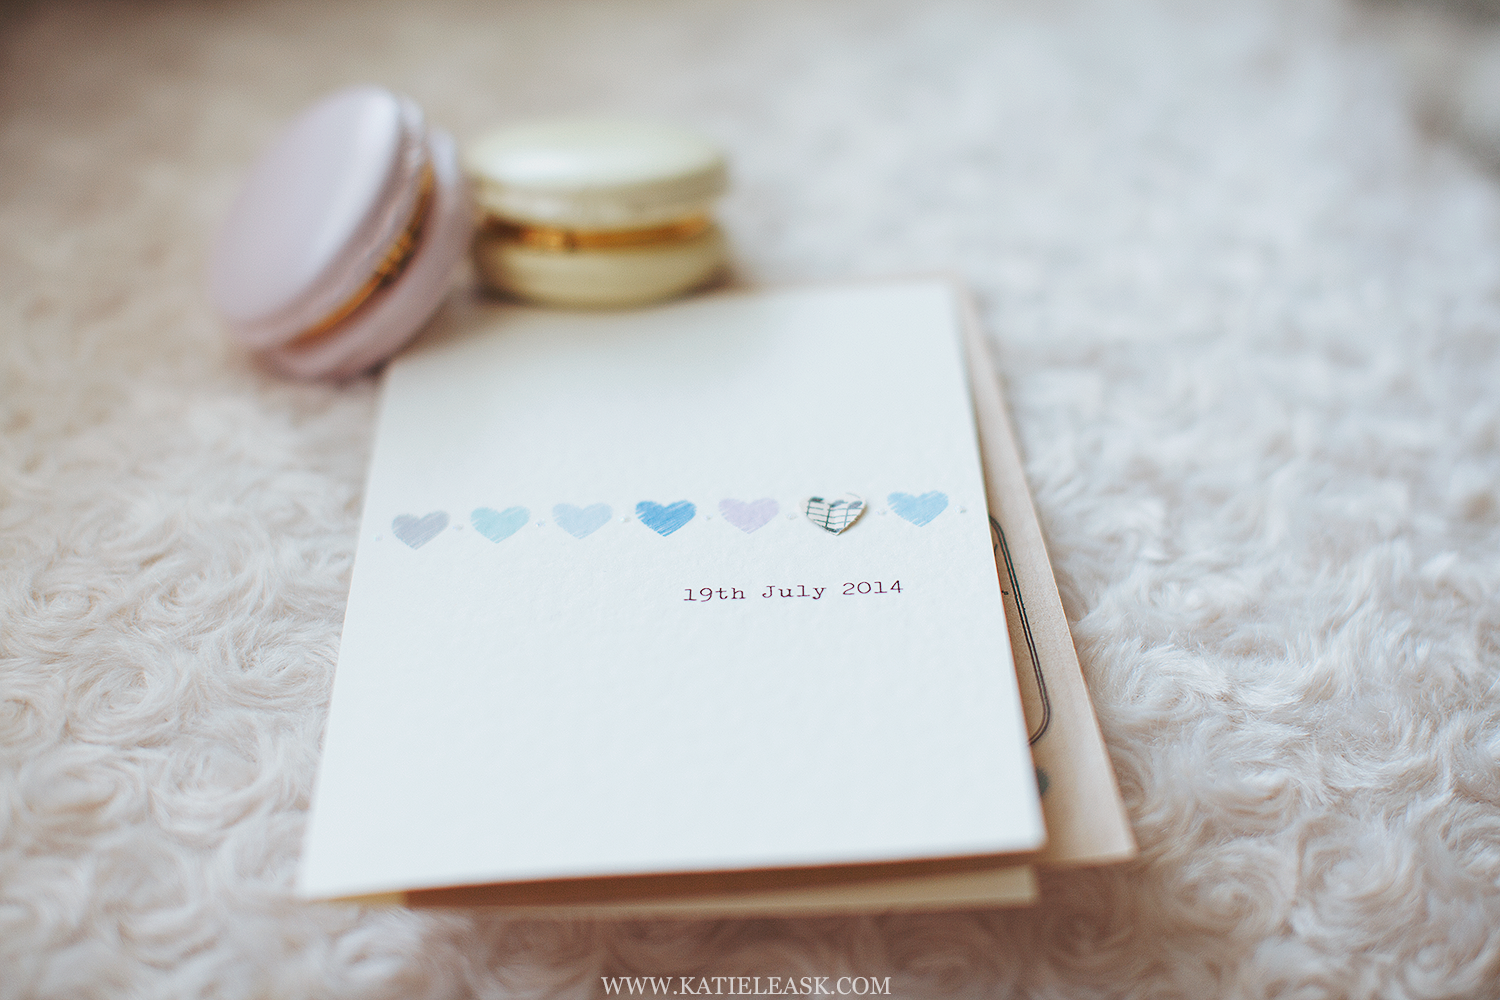 Katie-Leask-Wedding-Invite_000-S